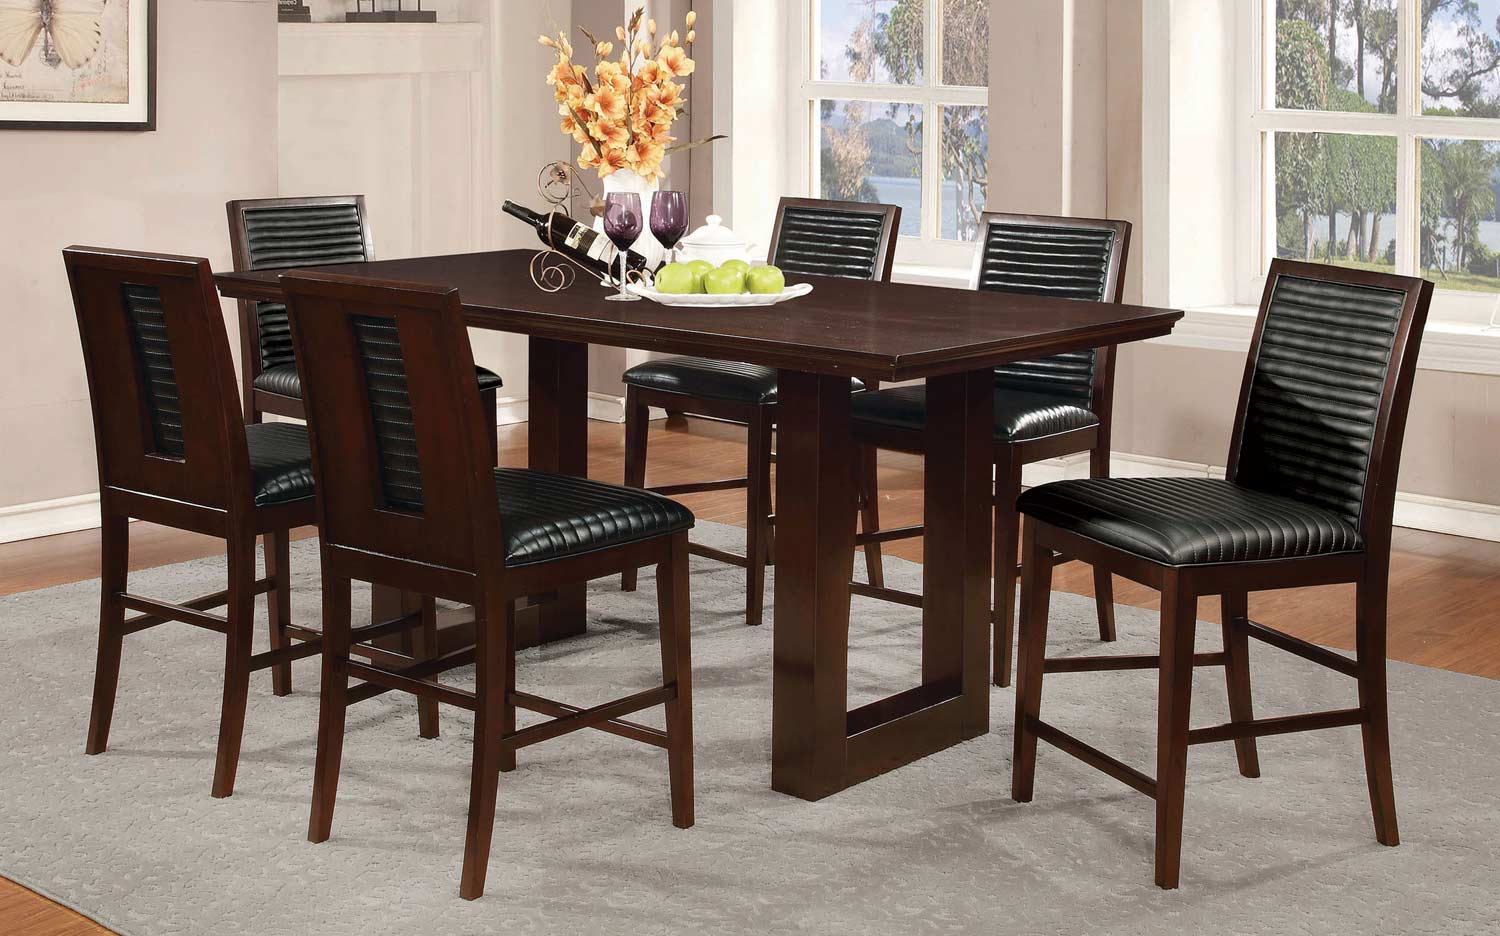 Coaster Chester Counter Height Dining Collection - Bitter Chocolate